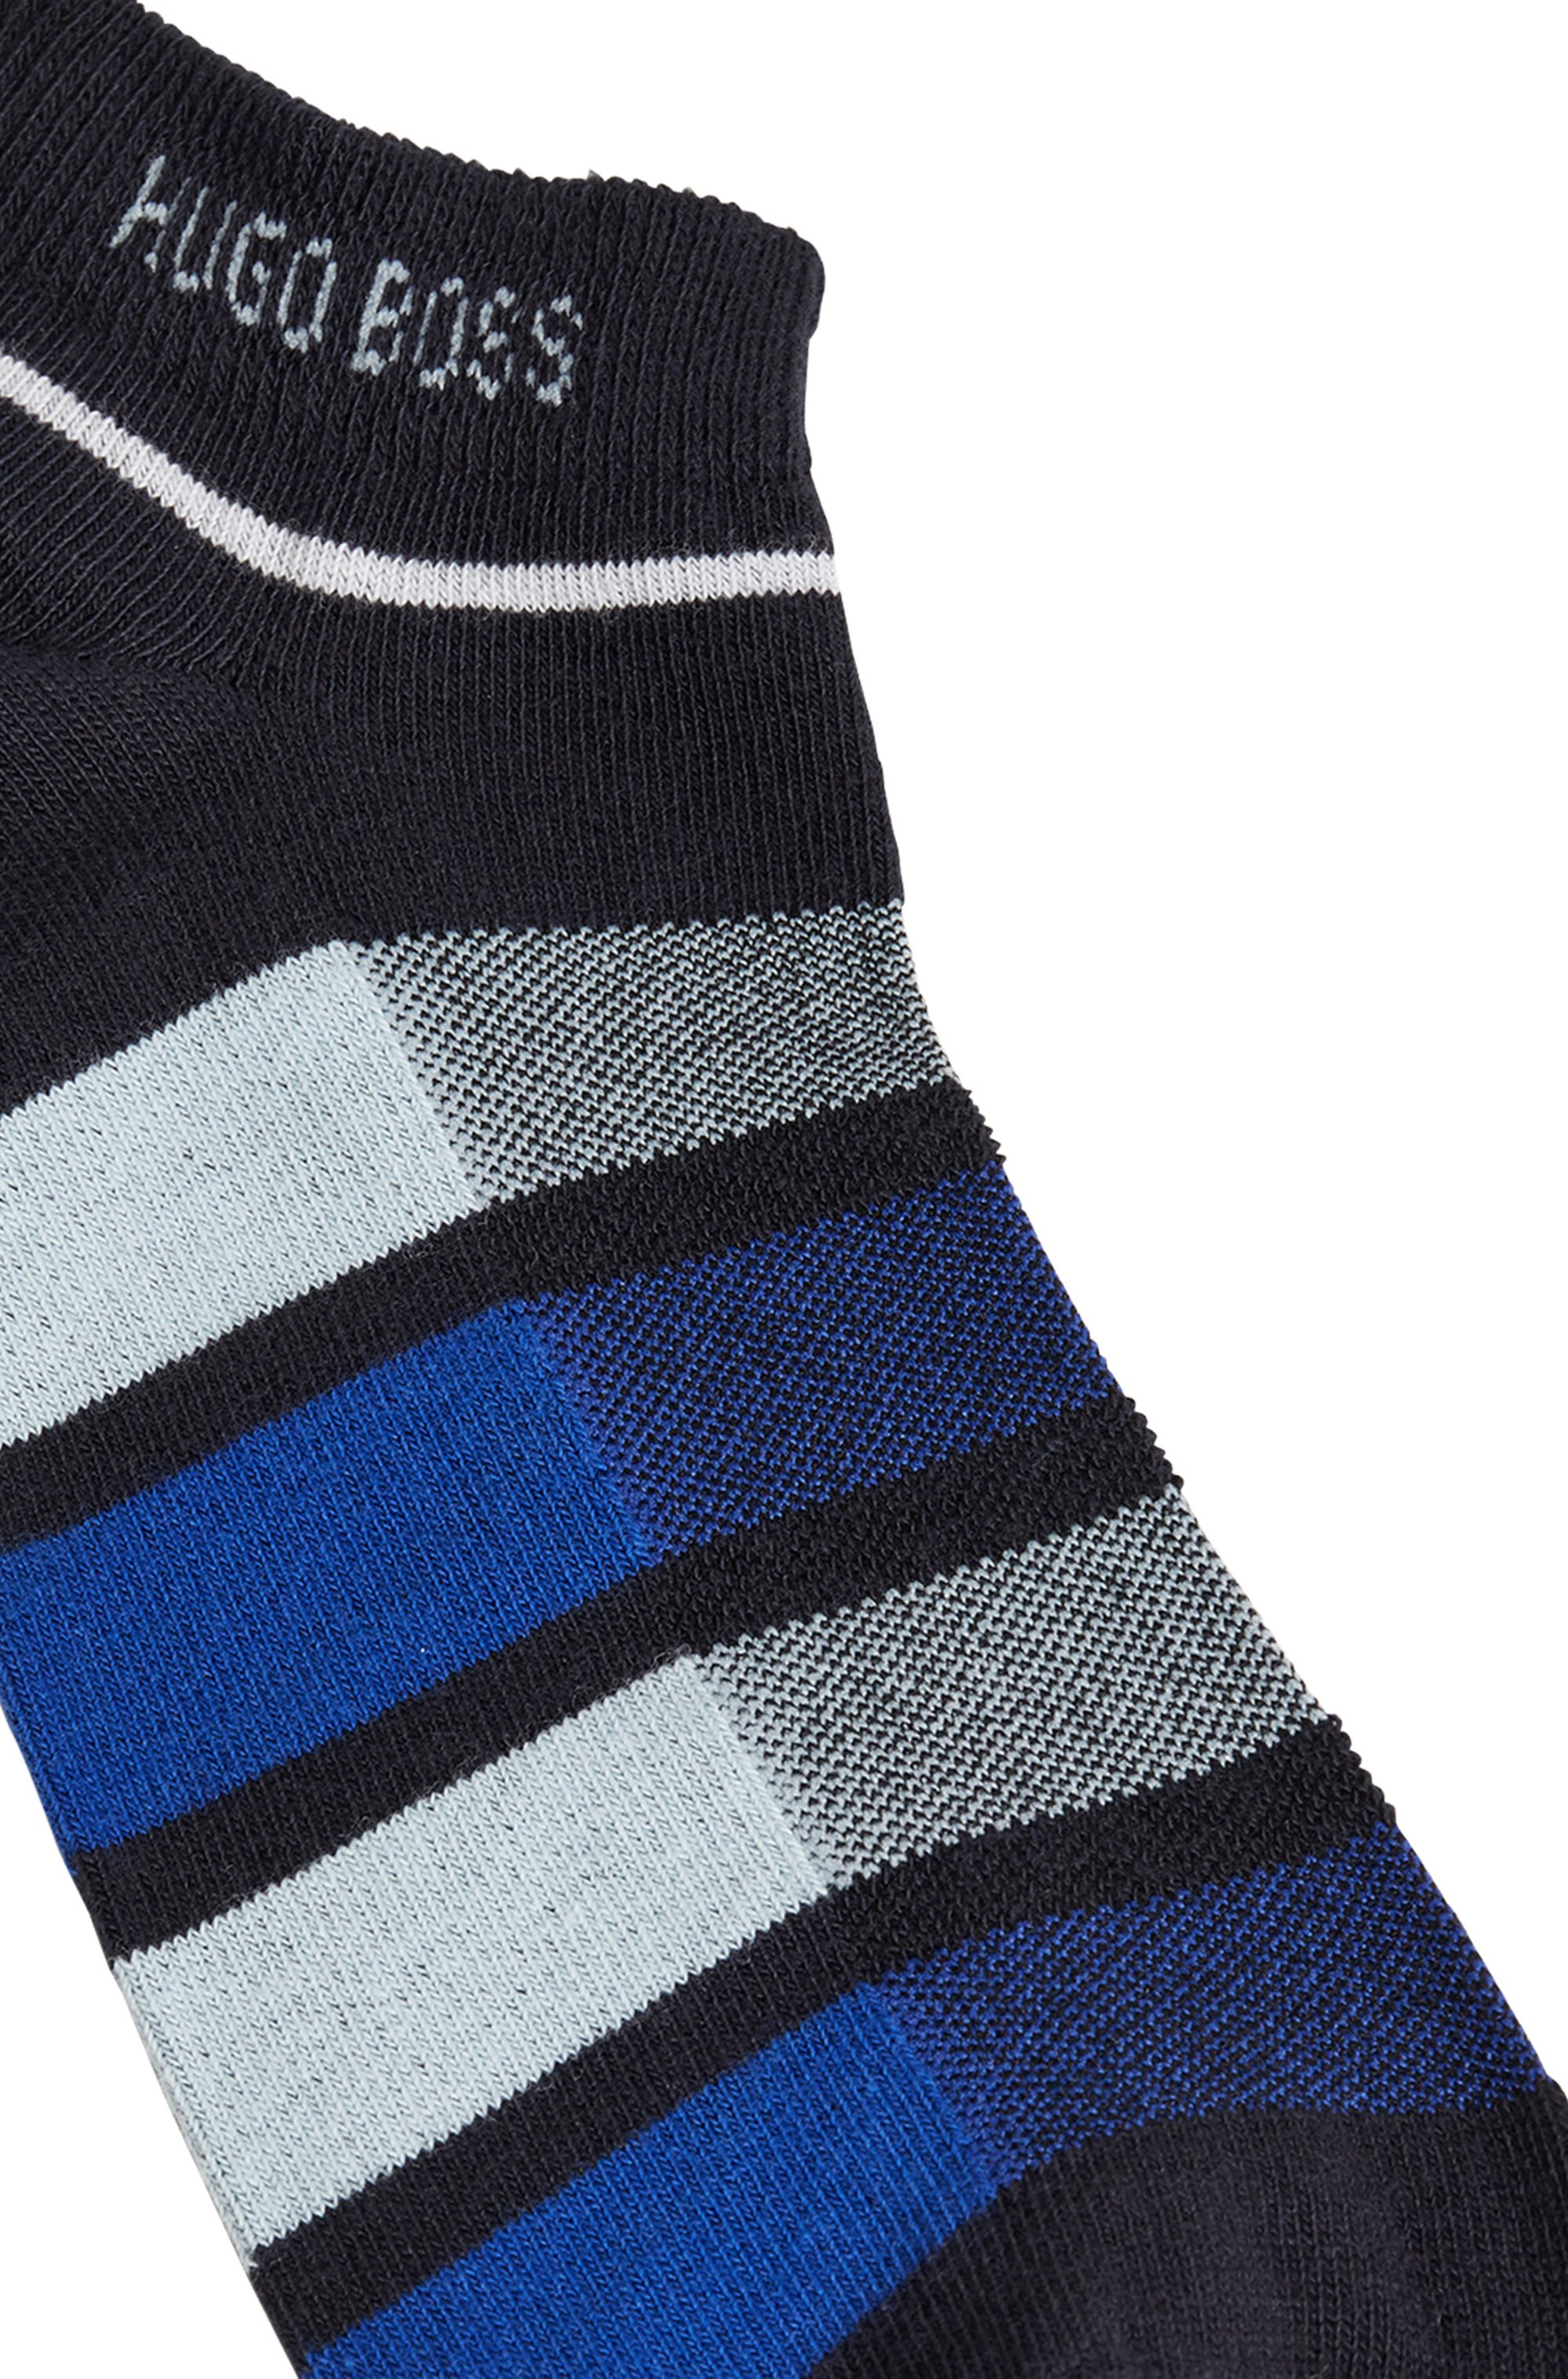 Two-pack of ankle socks in a combed-cotton blend